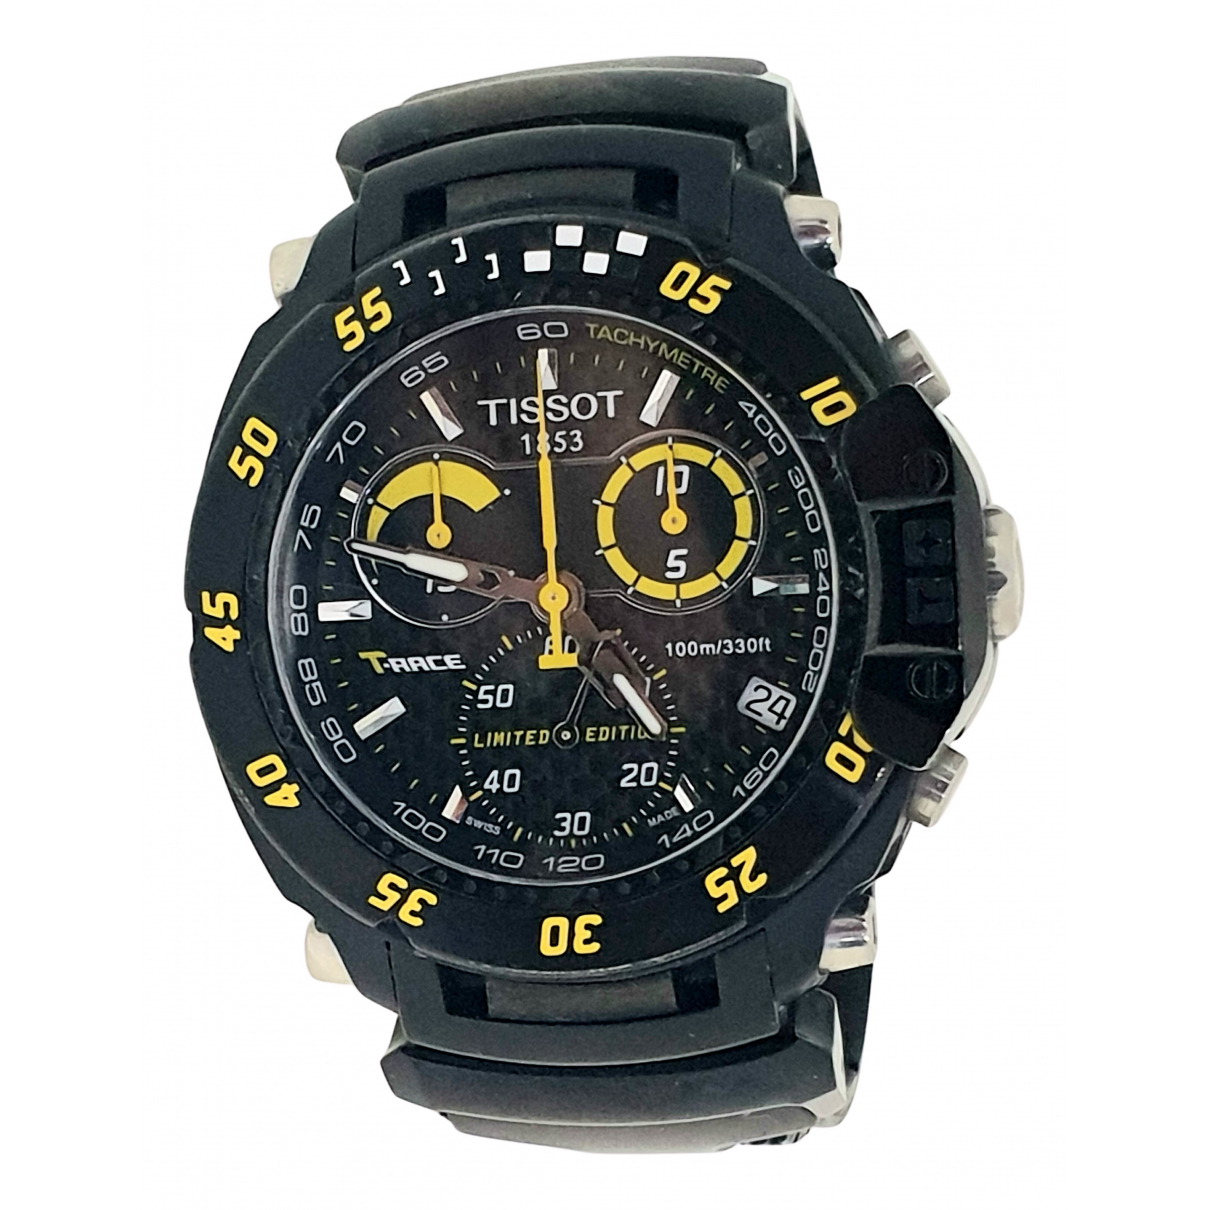 Tissot N Black Ceramic watch for Men N